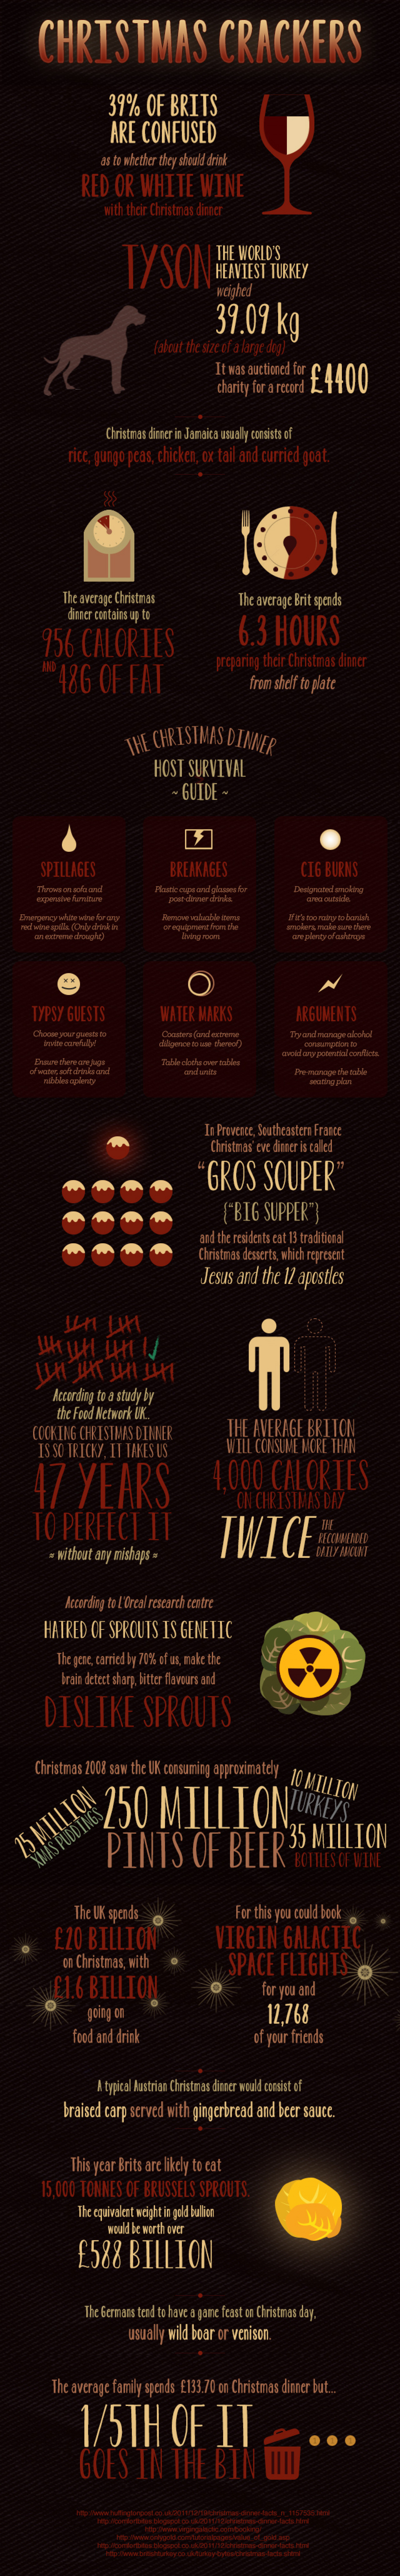 Christmas Crackers Infographic